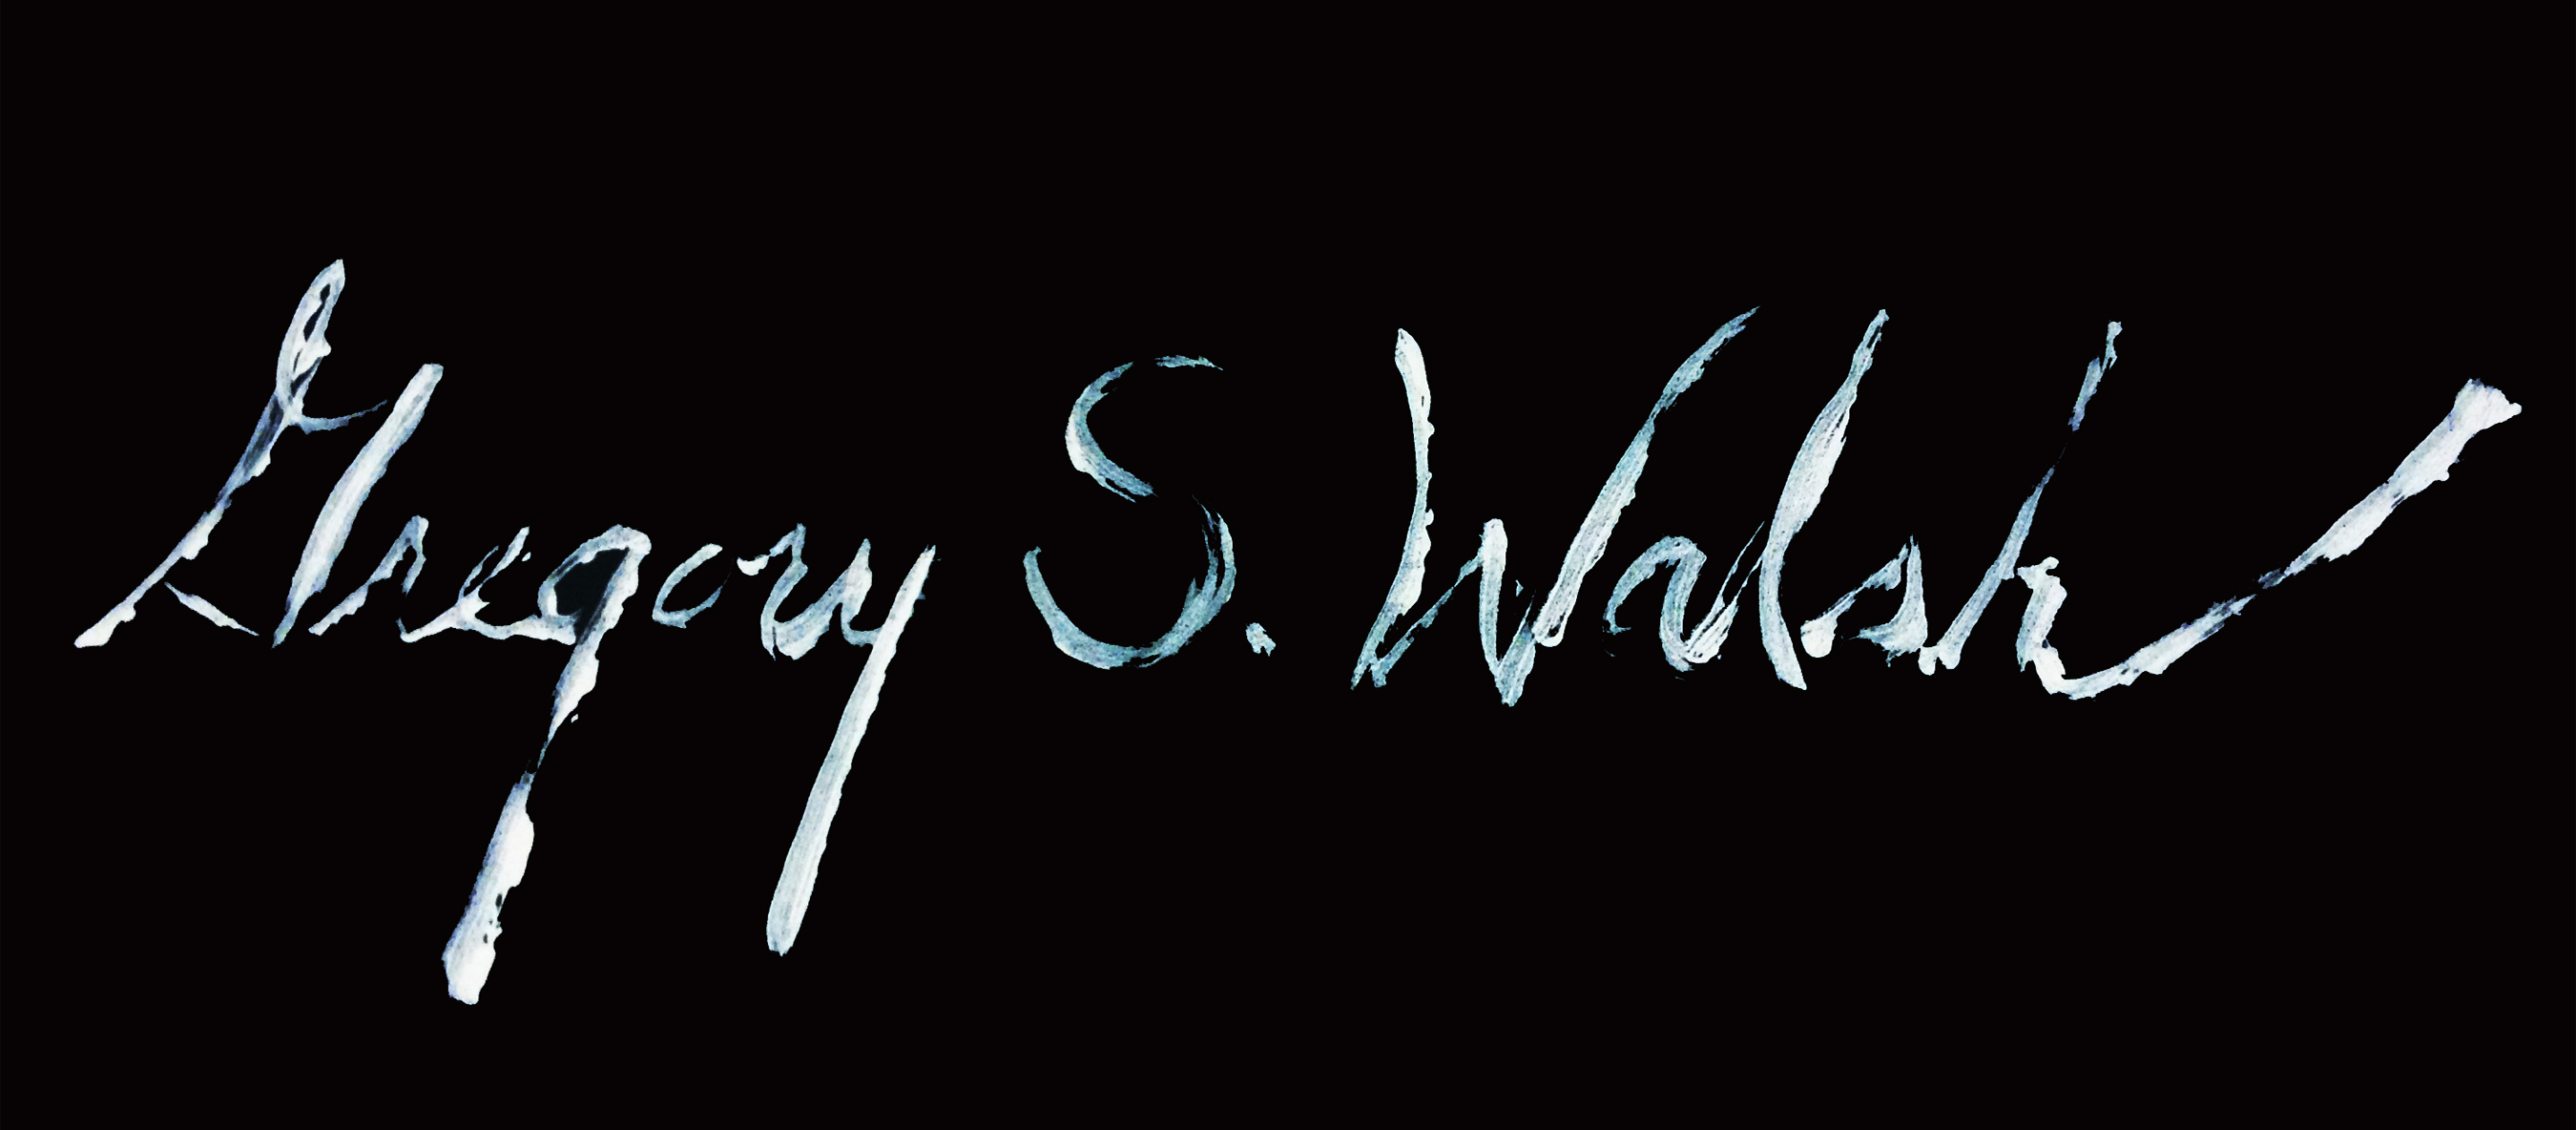 Gregory s. Walsh's Signature